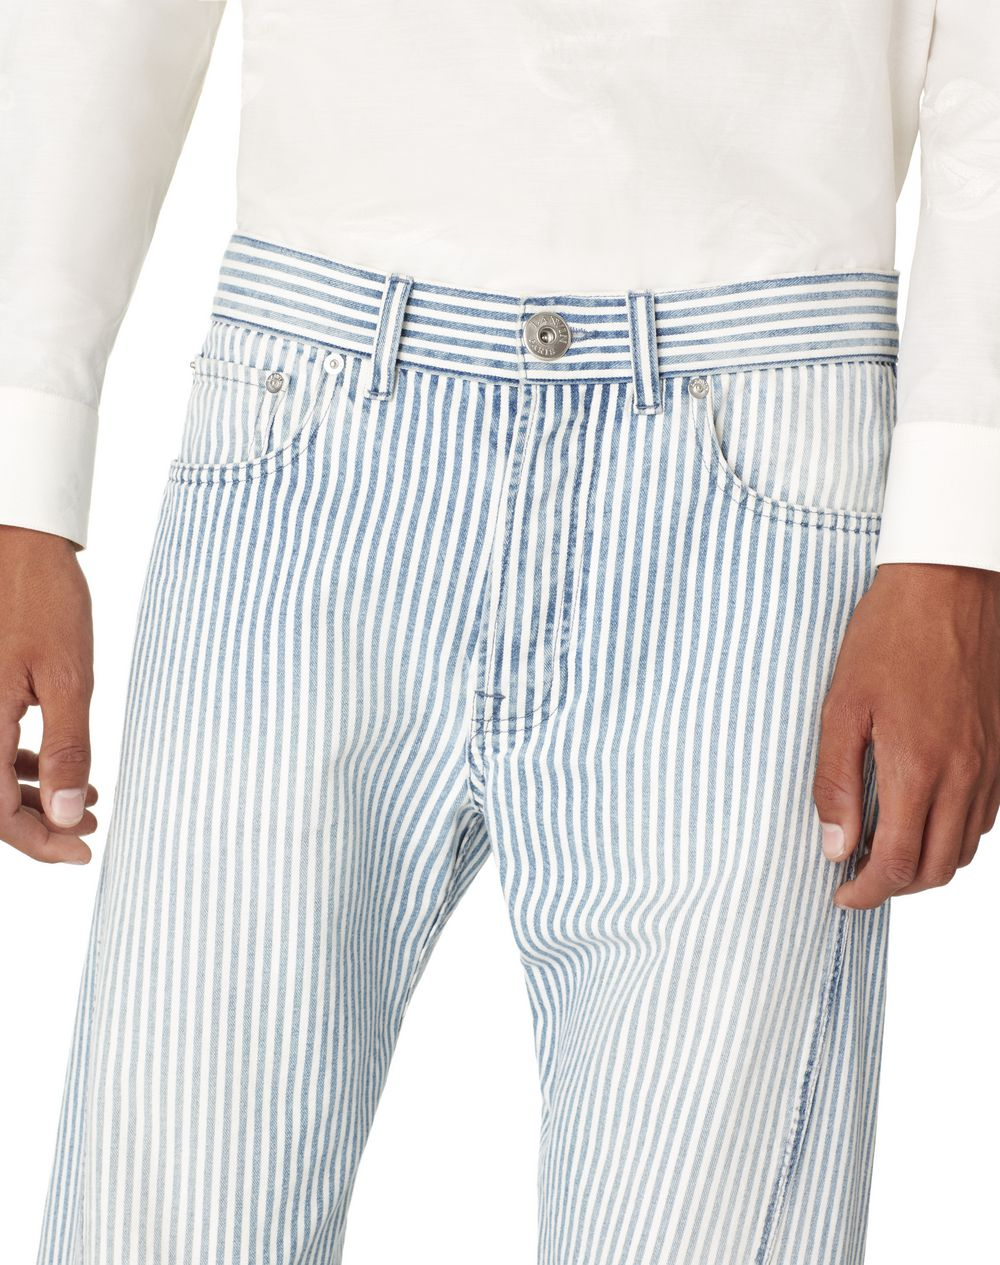 STRIPED DENIM TROUSERS - Lanvin